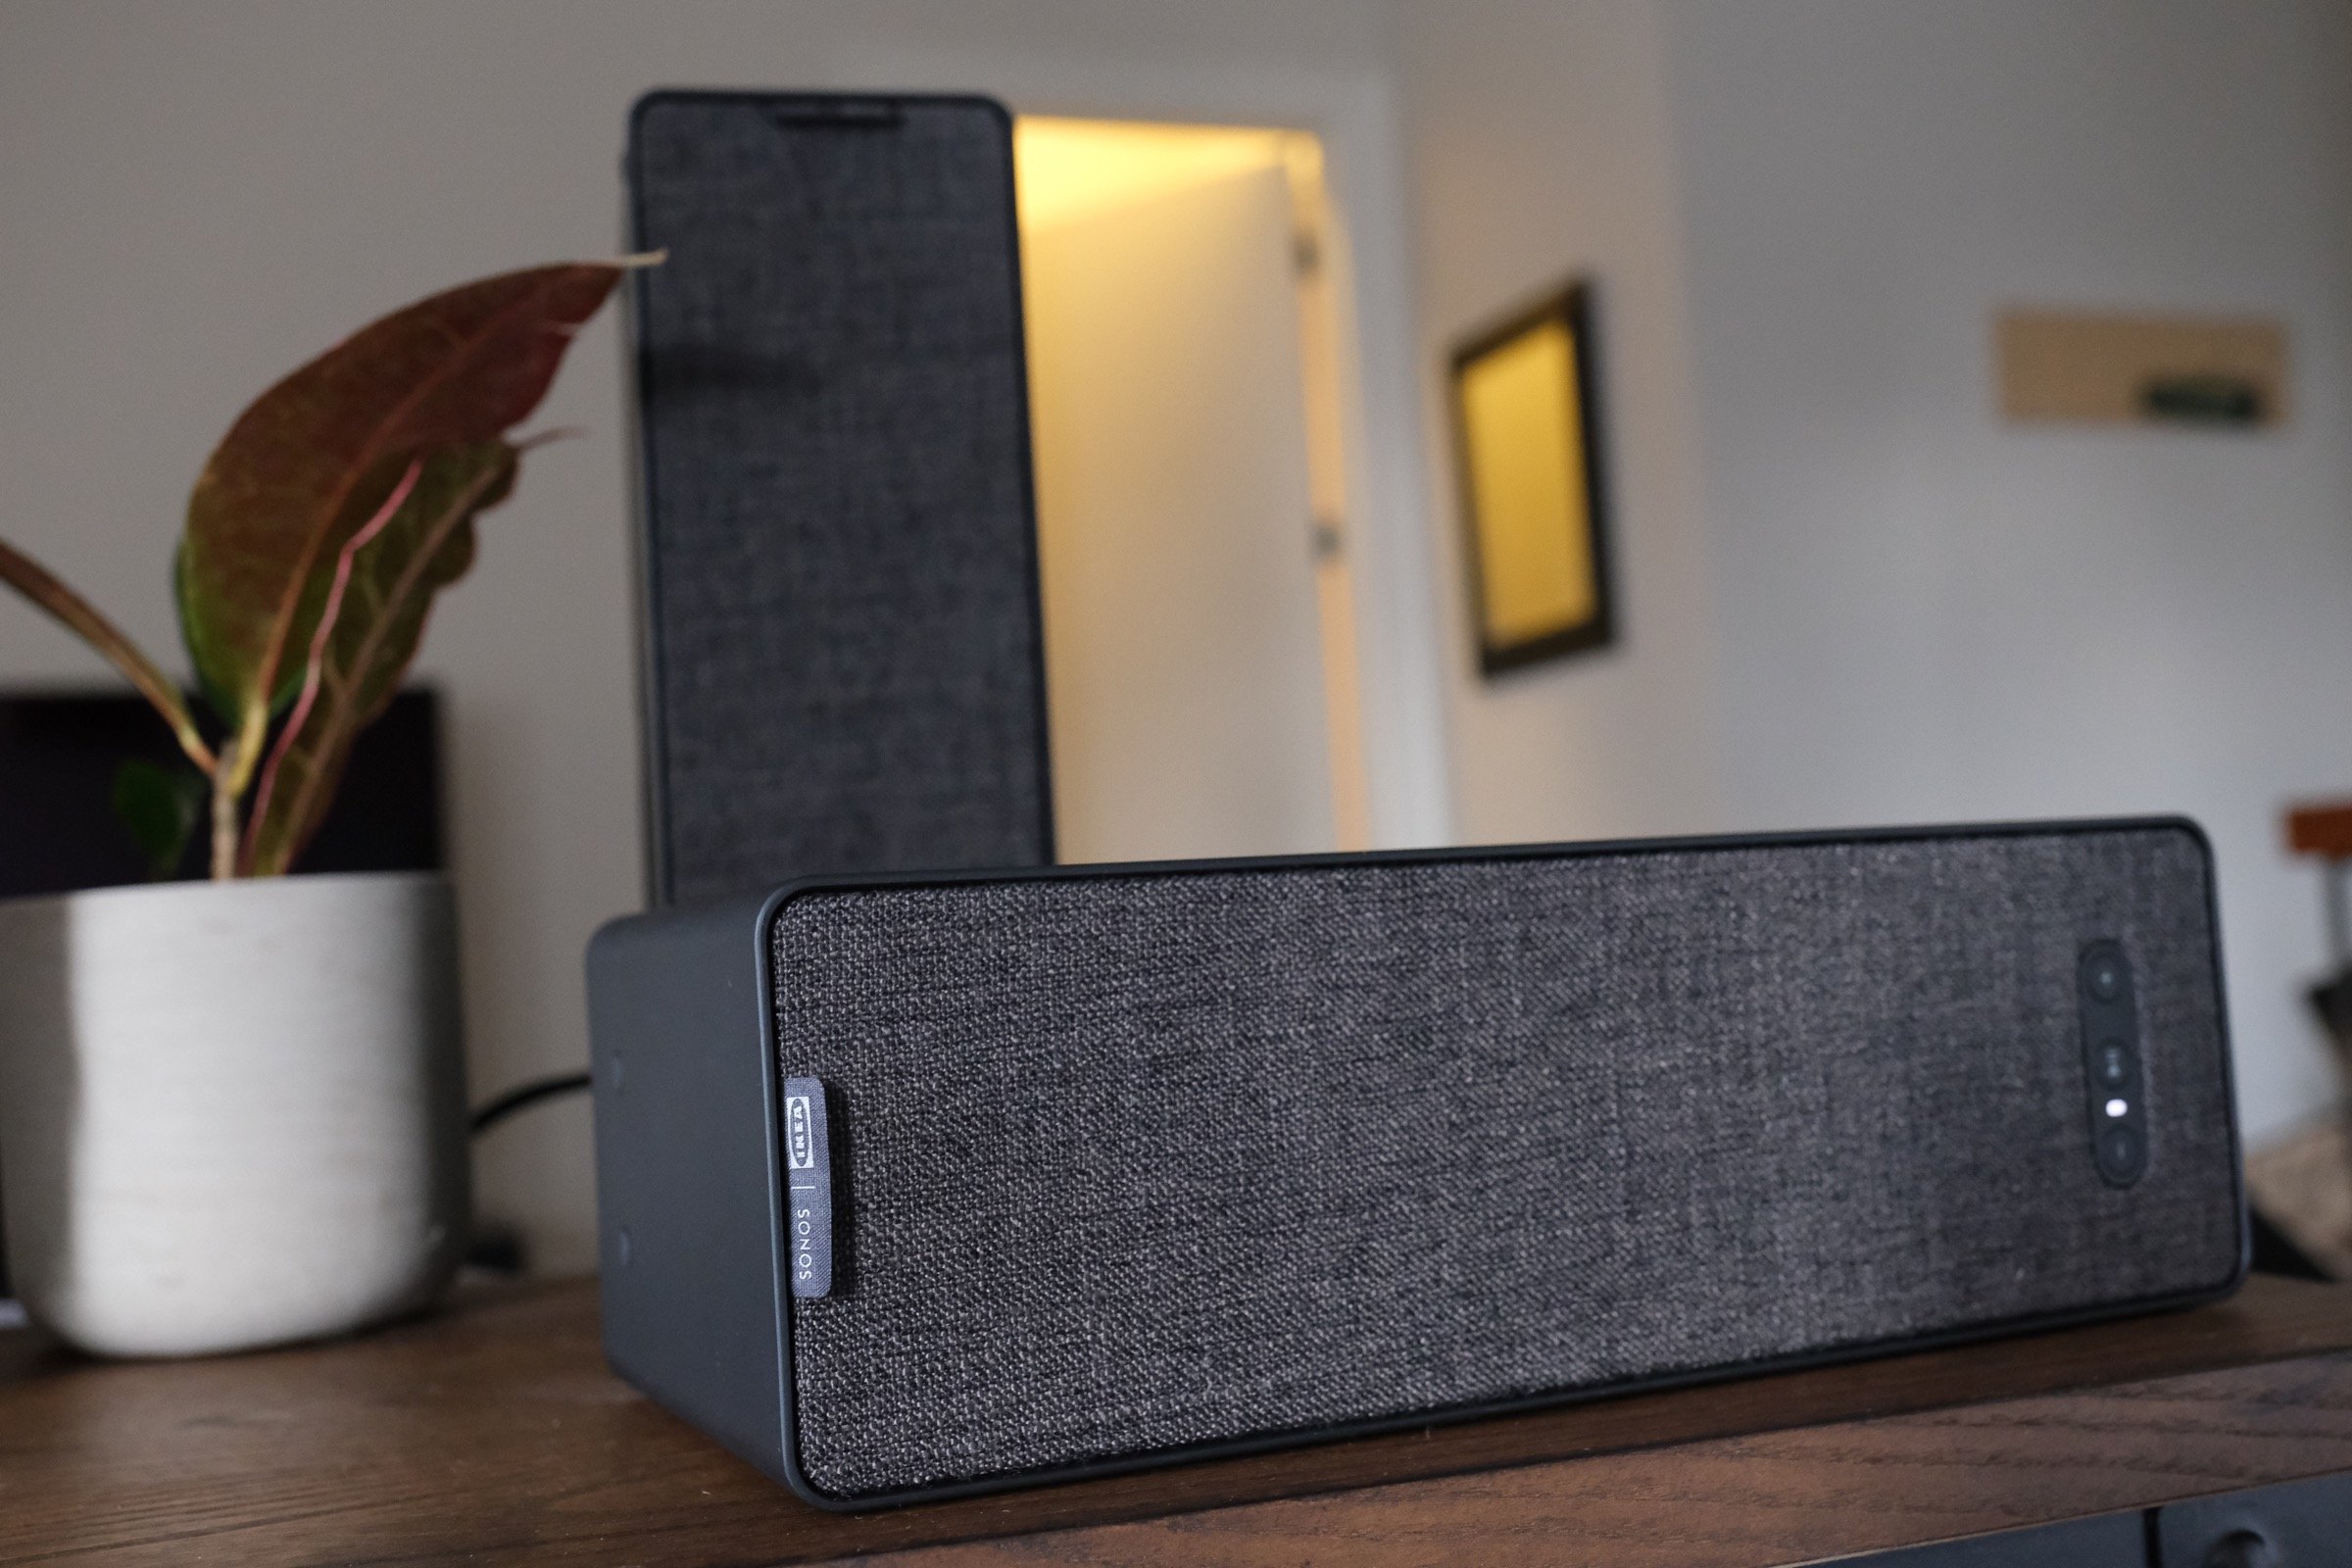 Sonos And Ikeas Symfonisk Wireless Speakers Are A Symphony